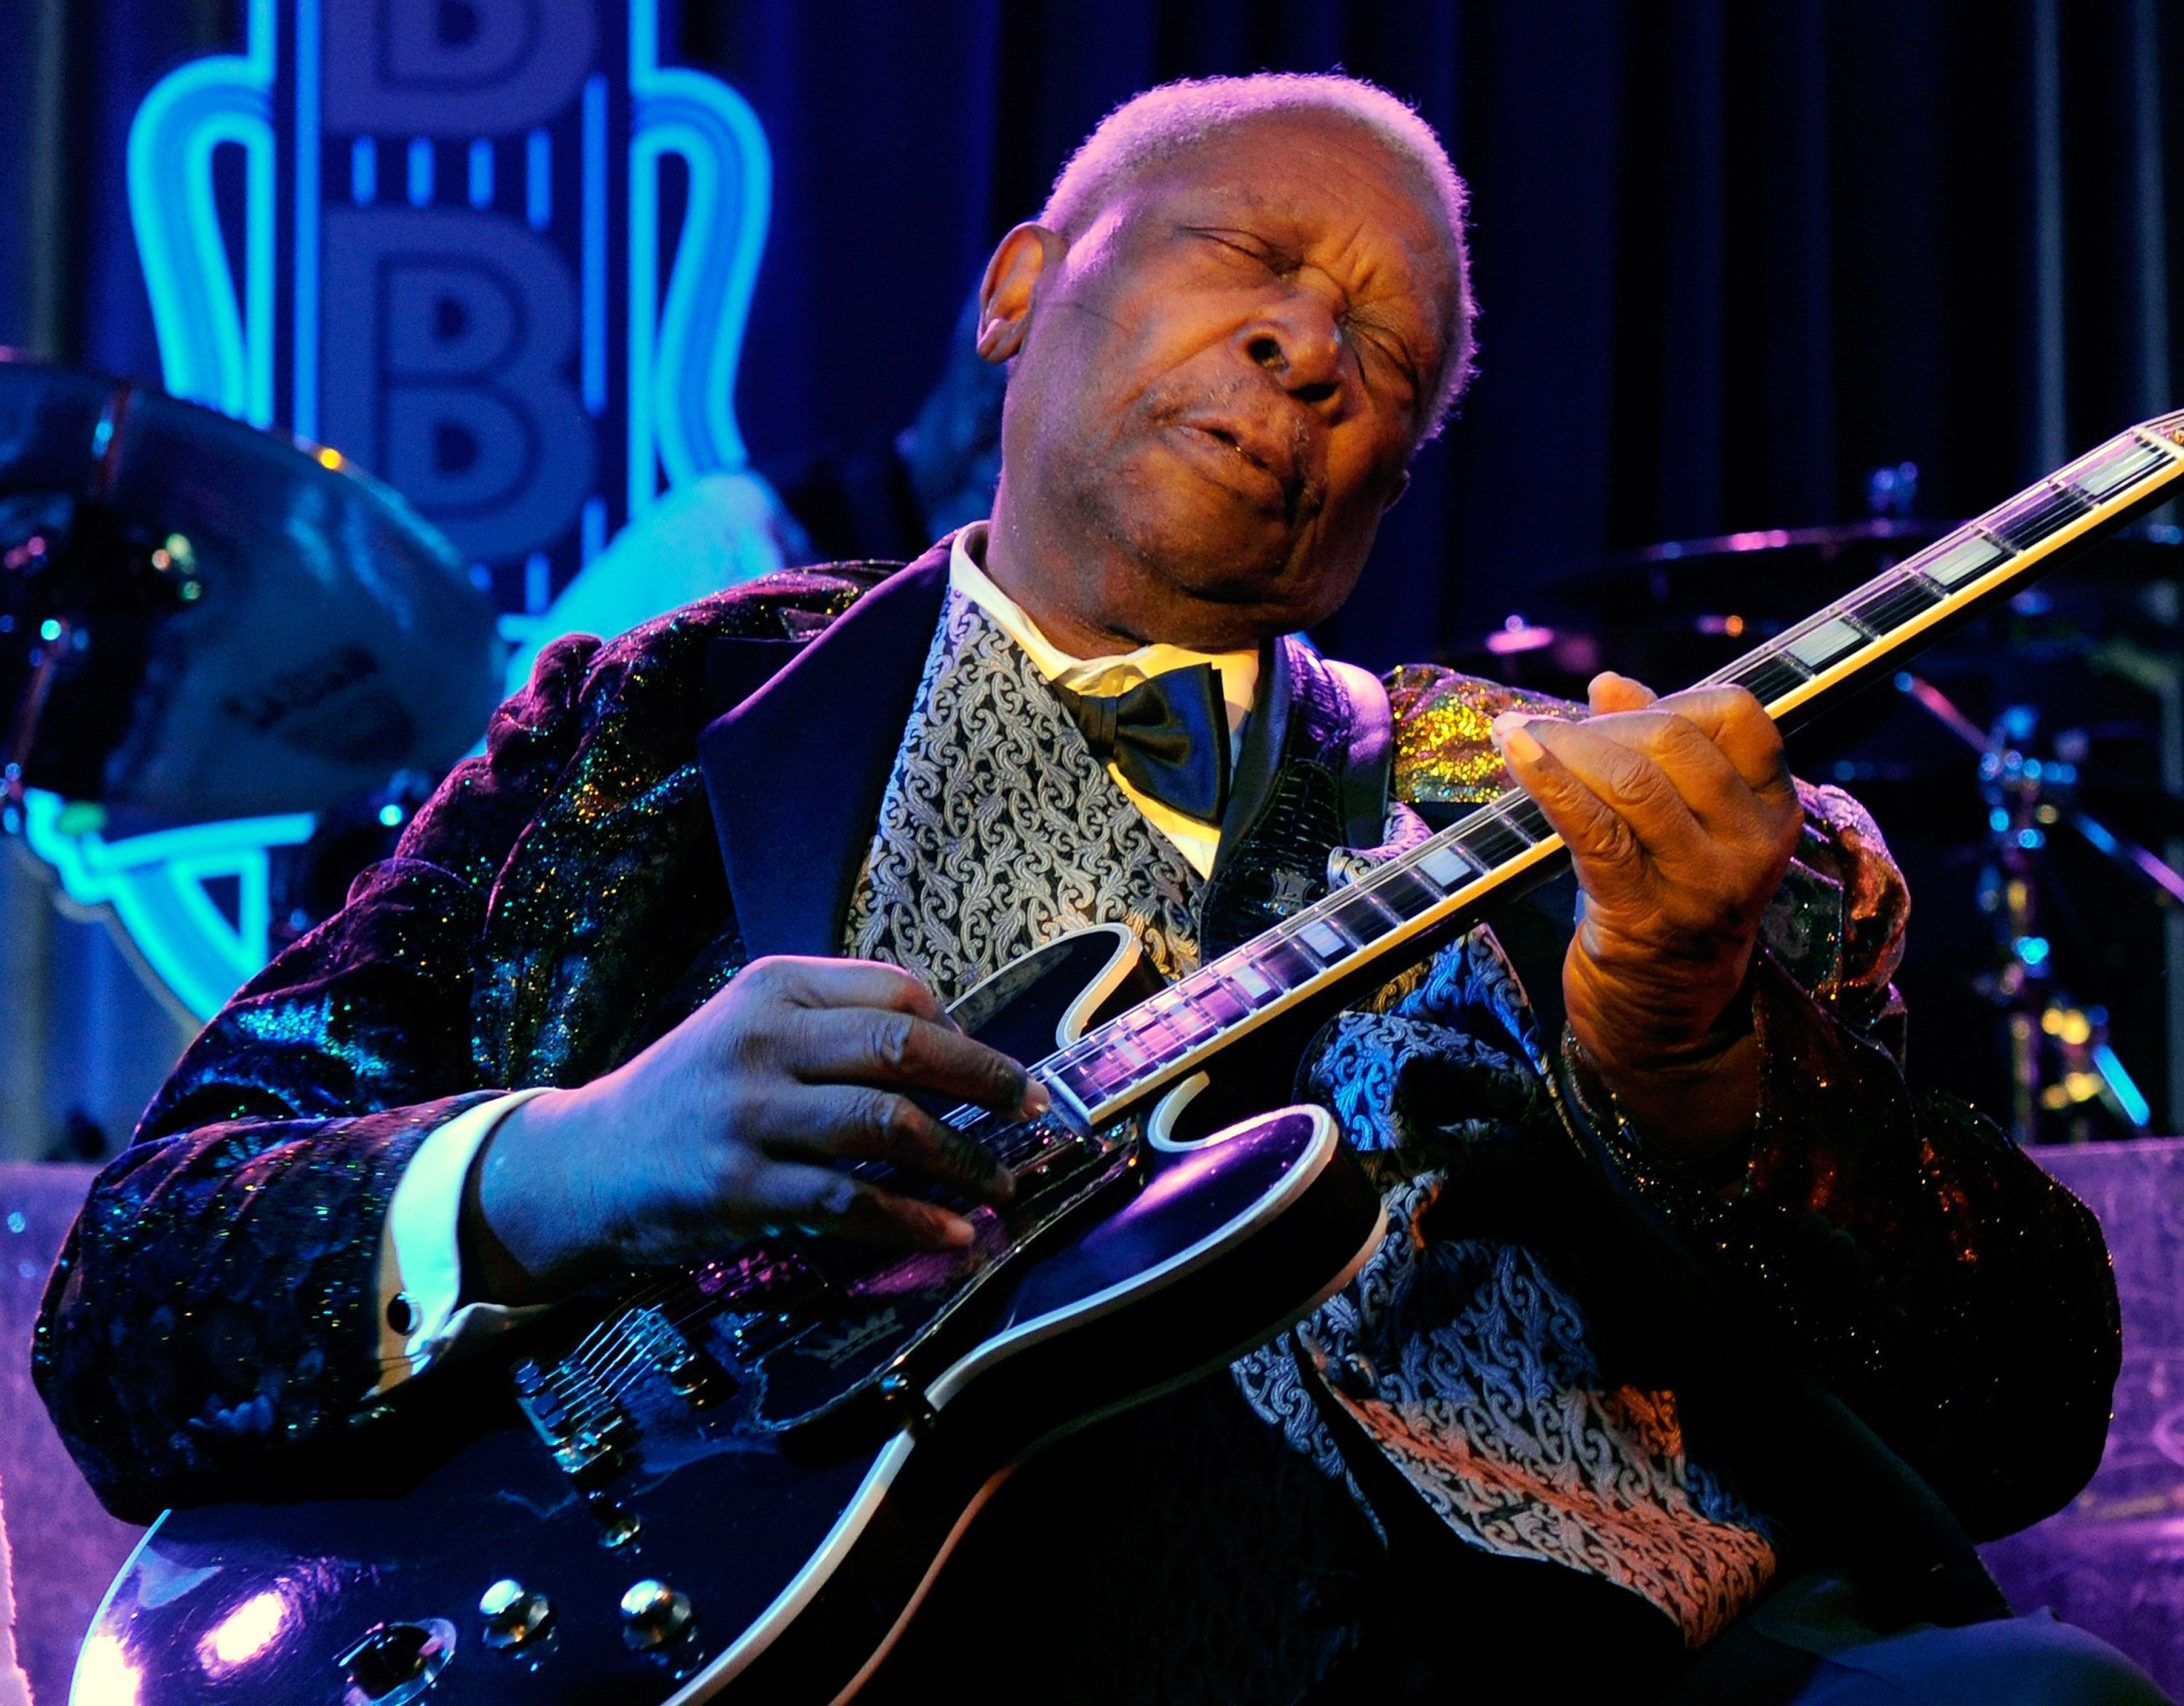 B B King In Concert At B B King's Blues Club At The Mirage